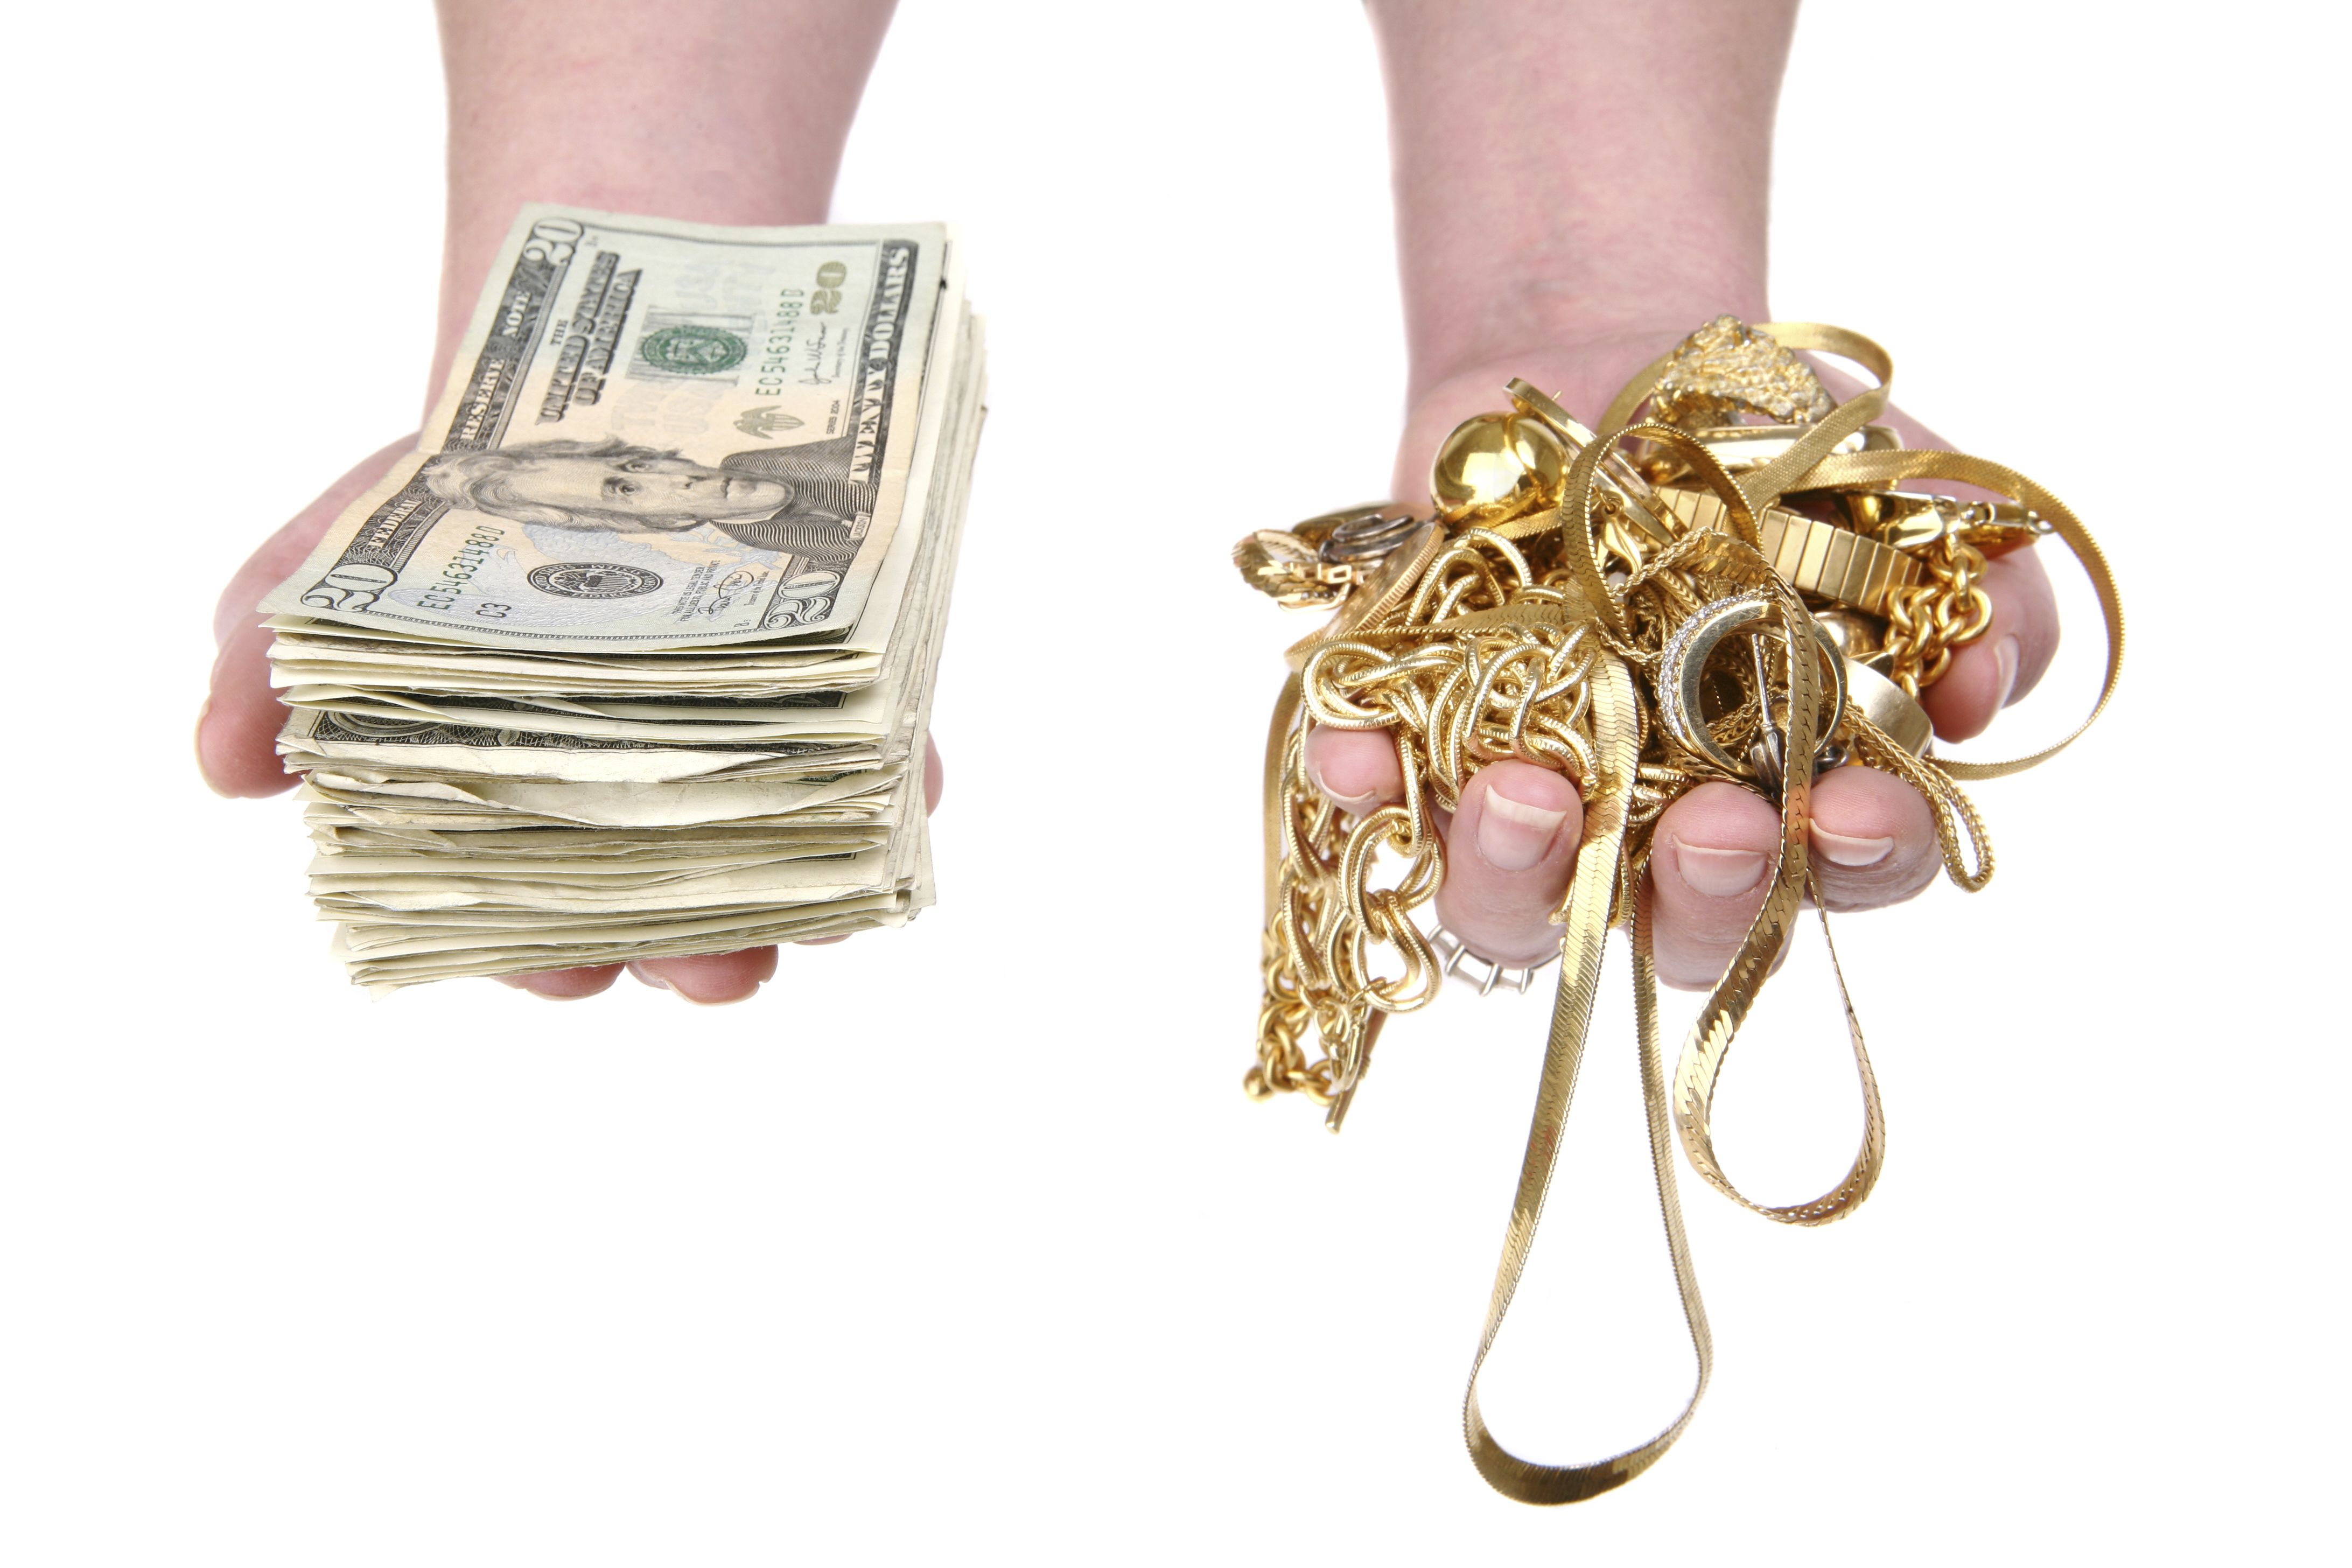 Sell us your gold jewelry and well give you cash in as little as